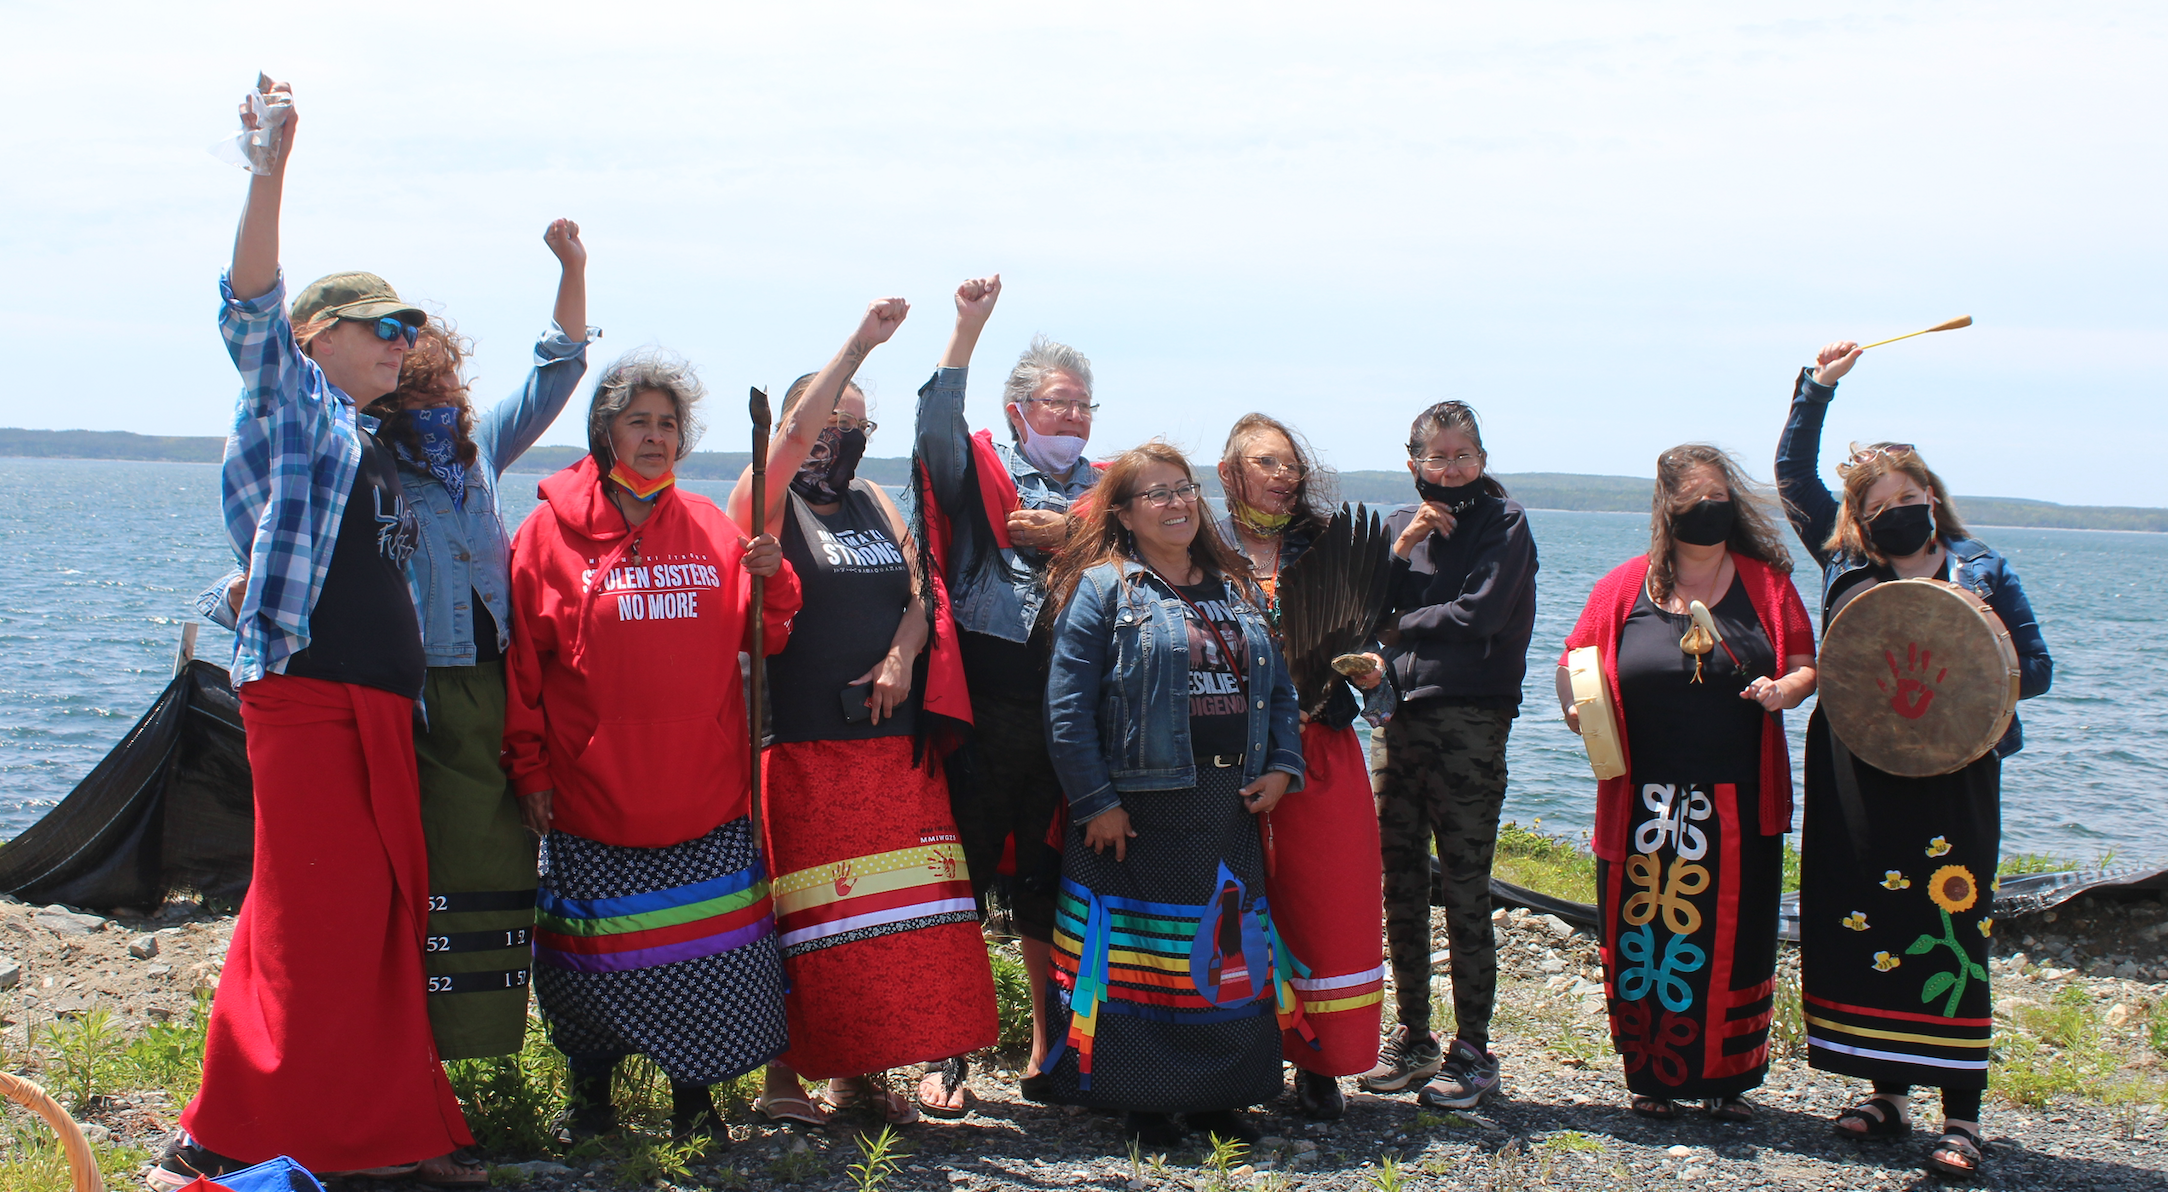 Ten Mi'kmaw women protest at Goldboro. It's a beautiful sunny day, and they are standing shoulder to shoulder with the ocean in the background. They are wearing brightly coloured ribbon skirts, and two of them have drums. Many of them have their fists raised.